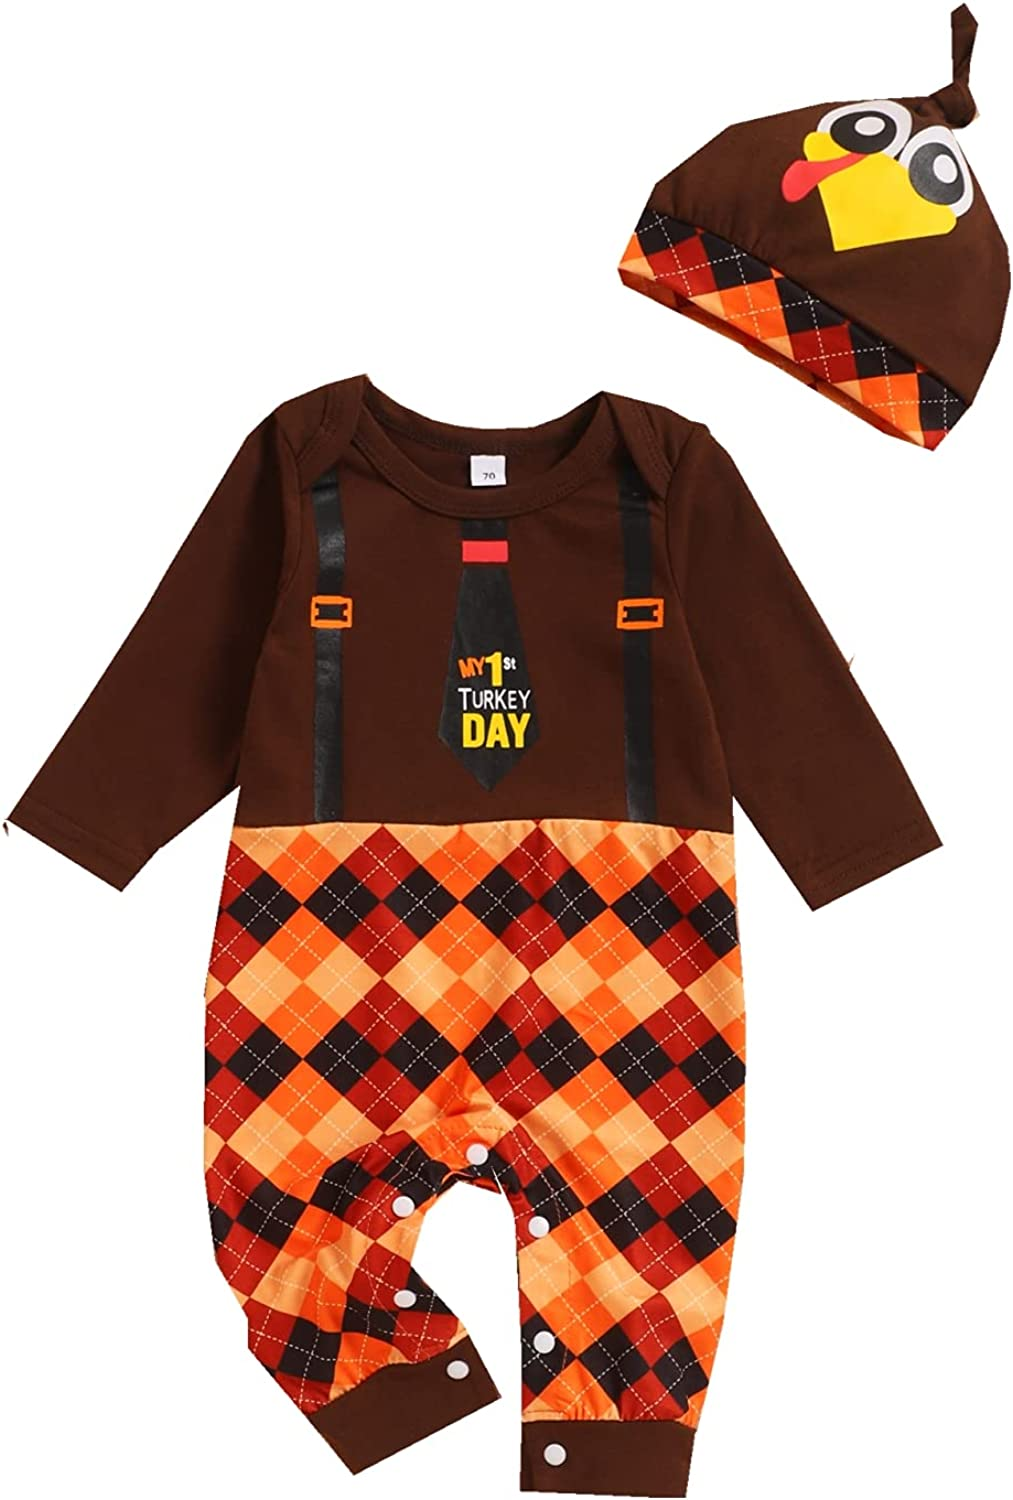 Newborn Baby Boy Thanksgiving CLothes My first Thanksgiving Outfit Cut Long Sleeve Romper Wiyh Hat 2 Psc Overall Outfit Set